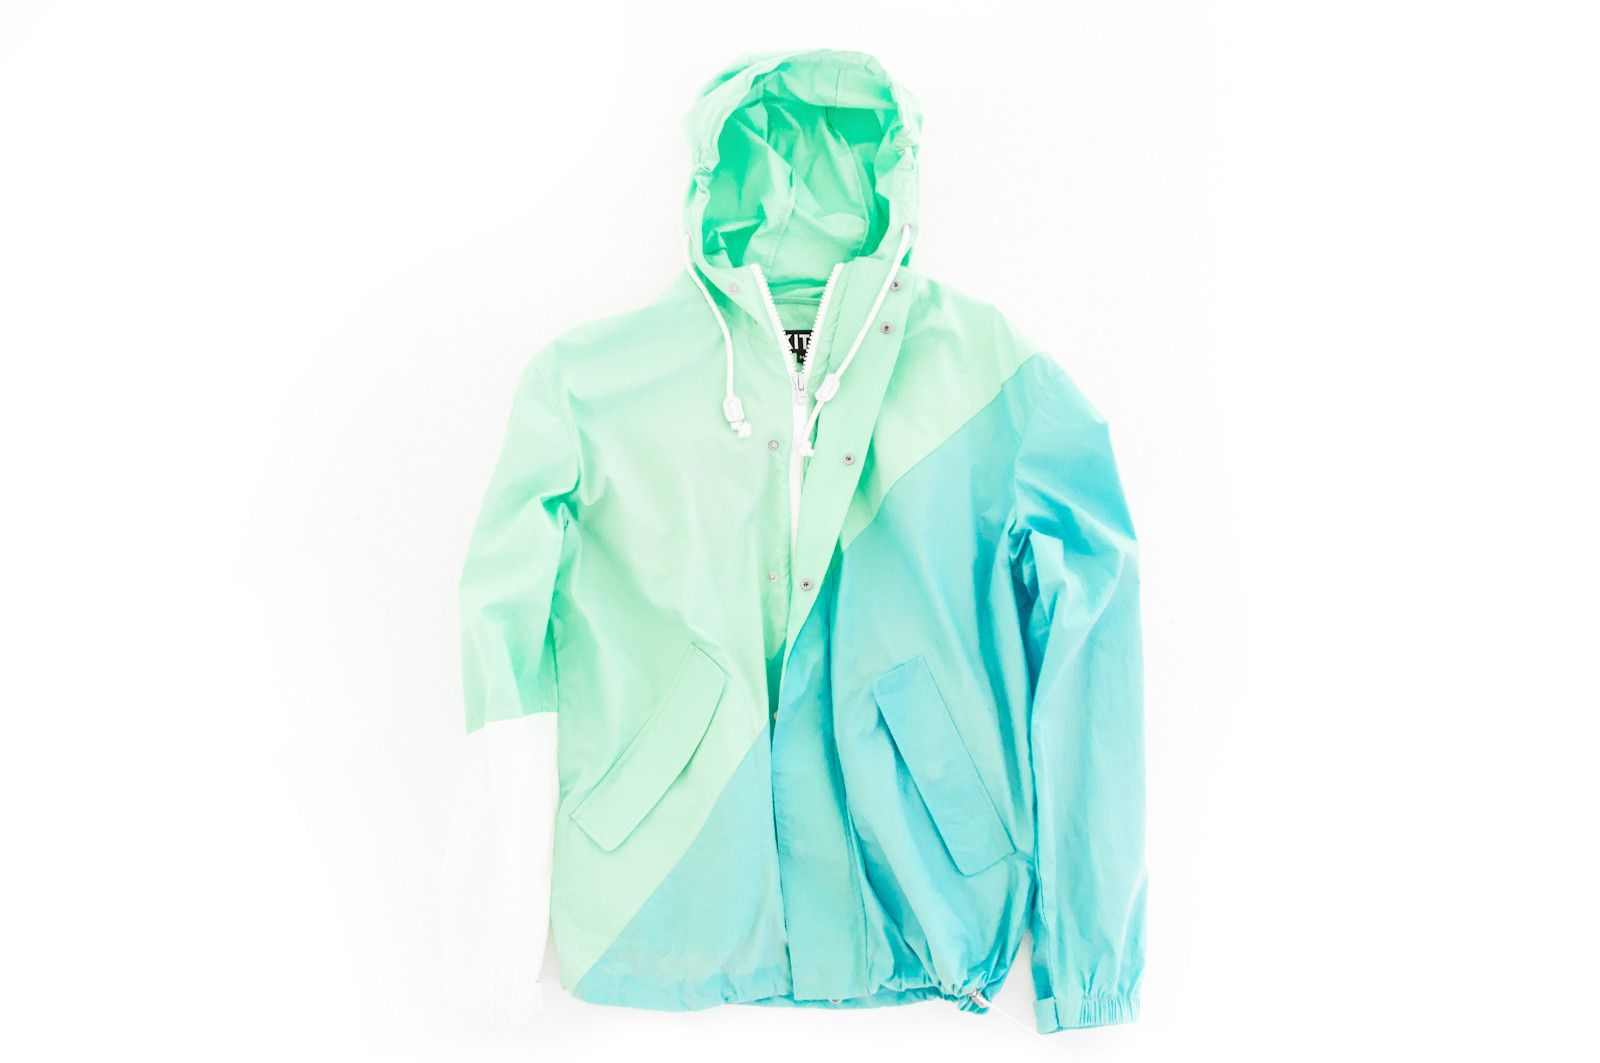 Sea Green Jacket - JacketIn